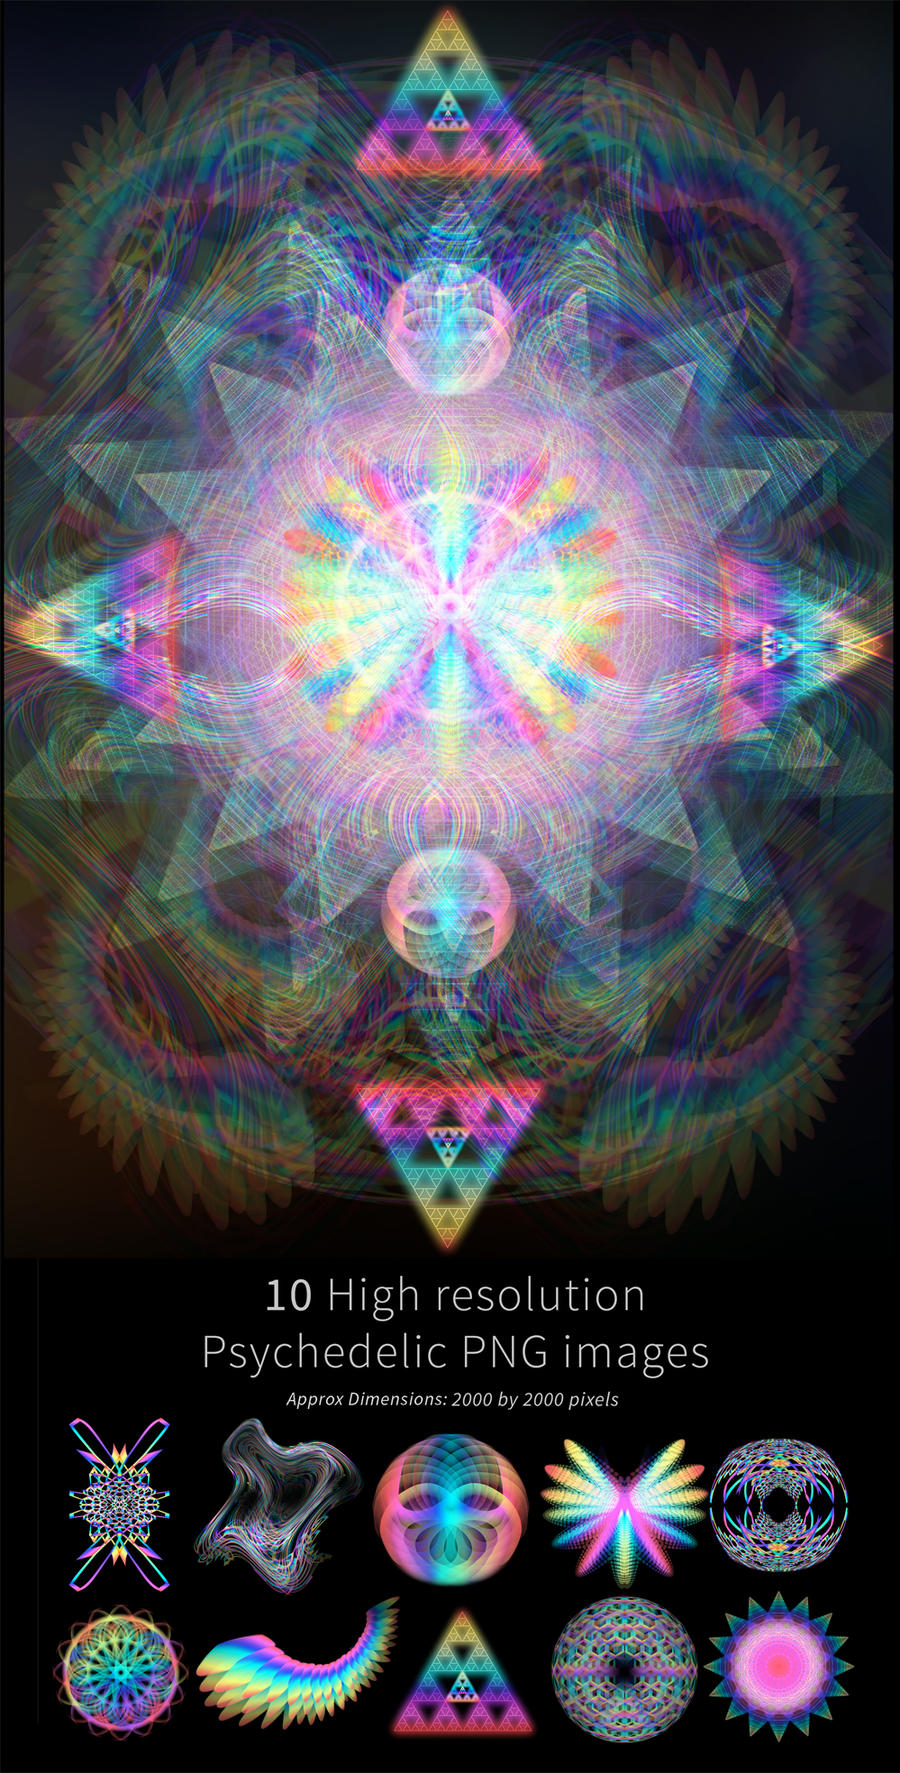 Psychedelic Stock Imagery Pack 5 by LouisDyer on DeviantArt: louisdyer.deviantart.com/art/Psychedelic-Stock-Imagery-Pack-5...